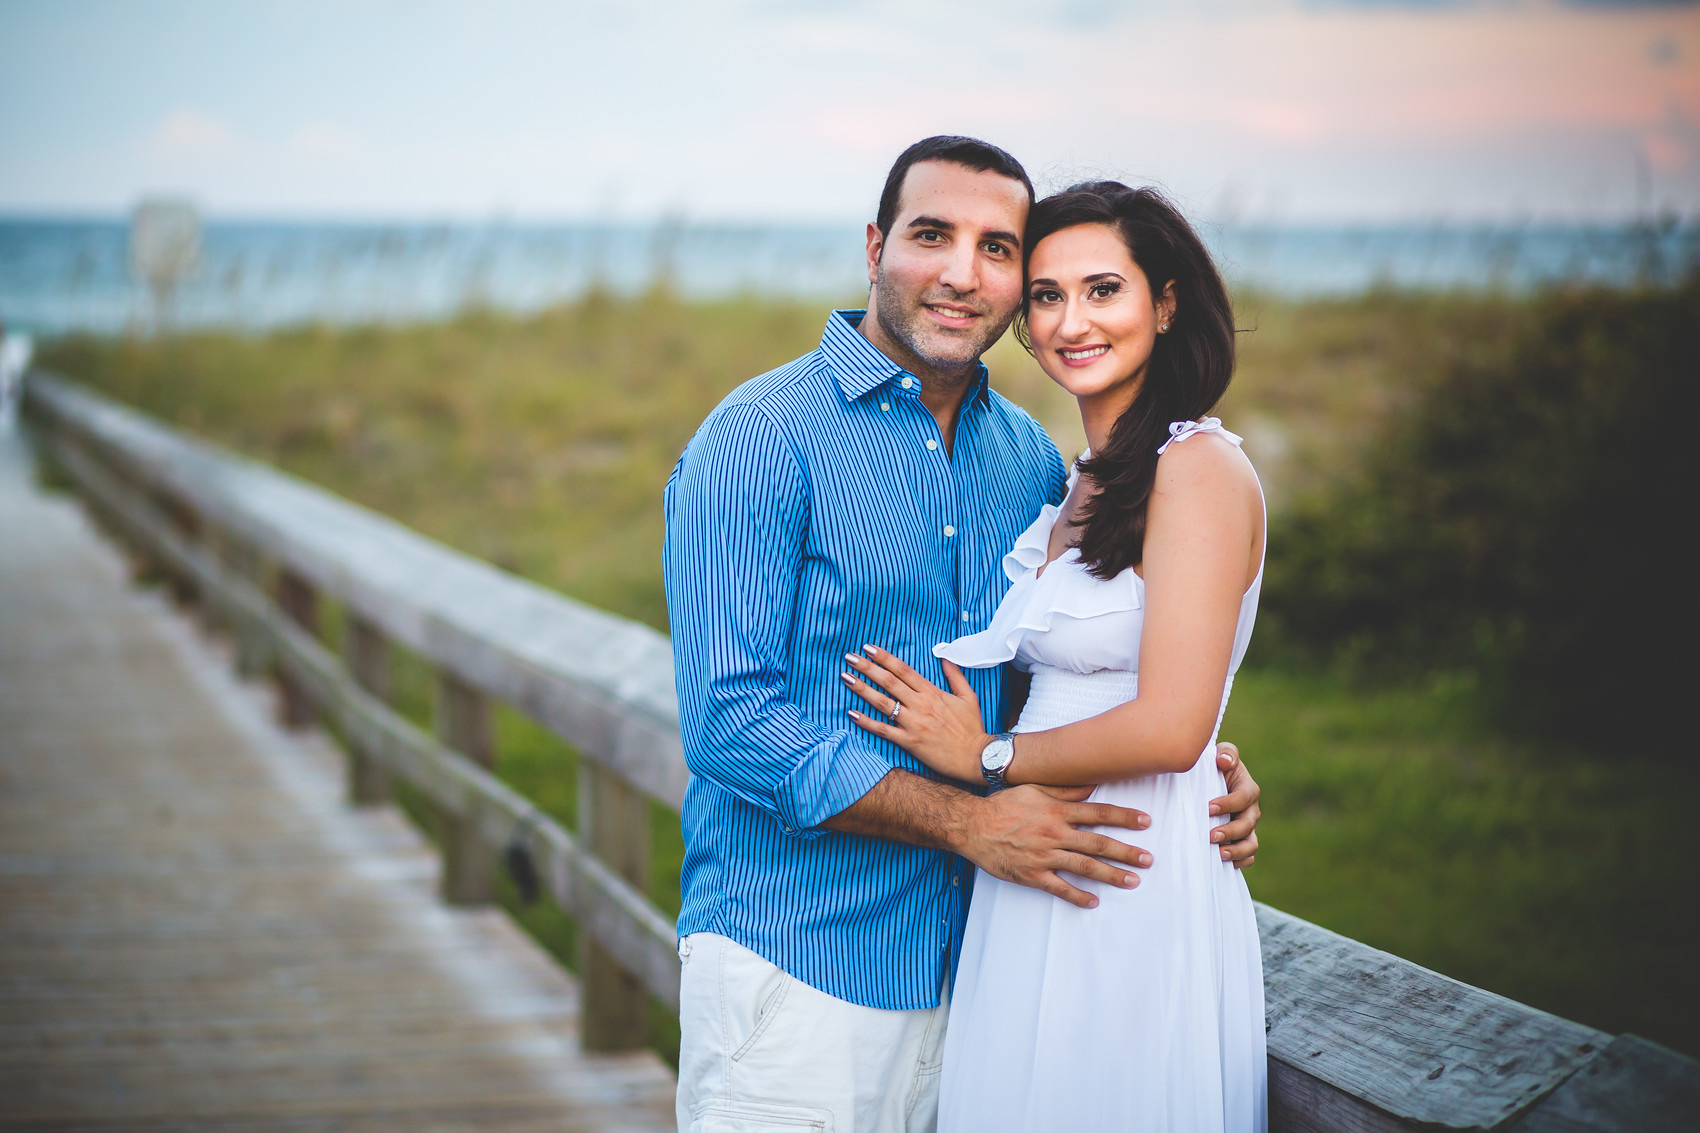 adam-szarmack-atlantic-beach-engagement-photographer-13.jpg